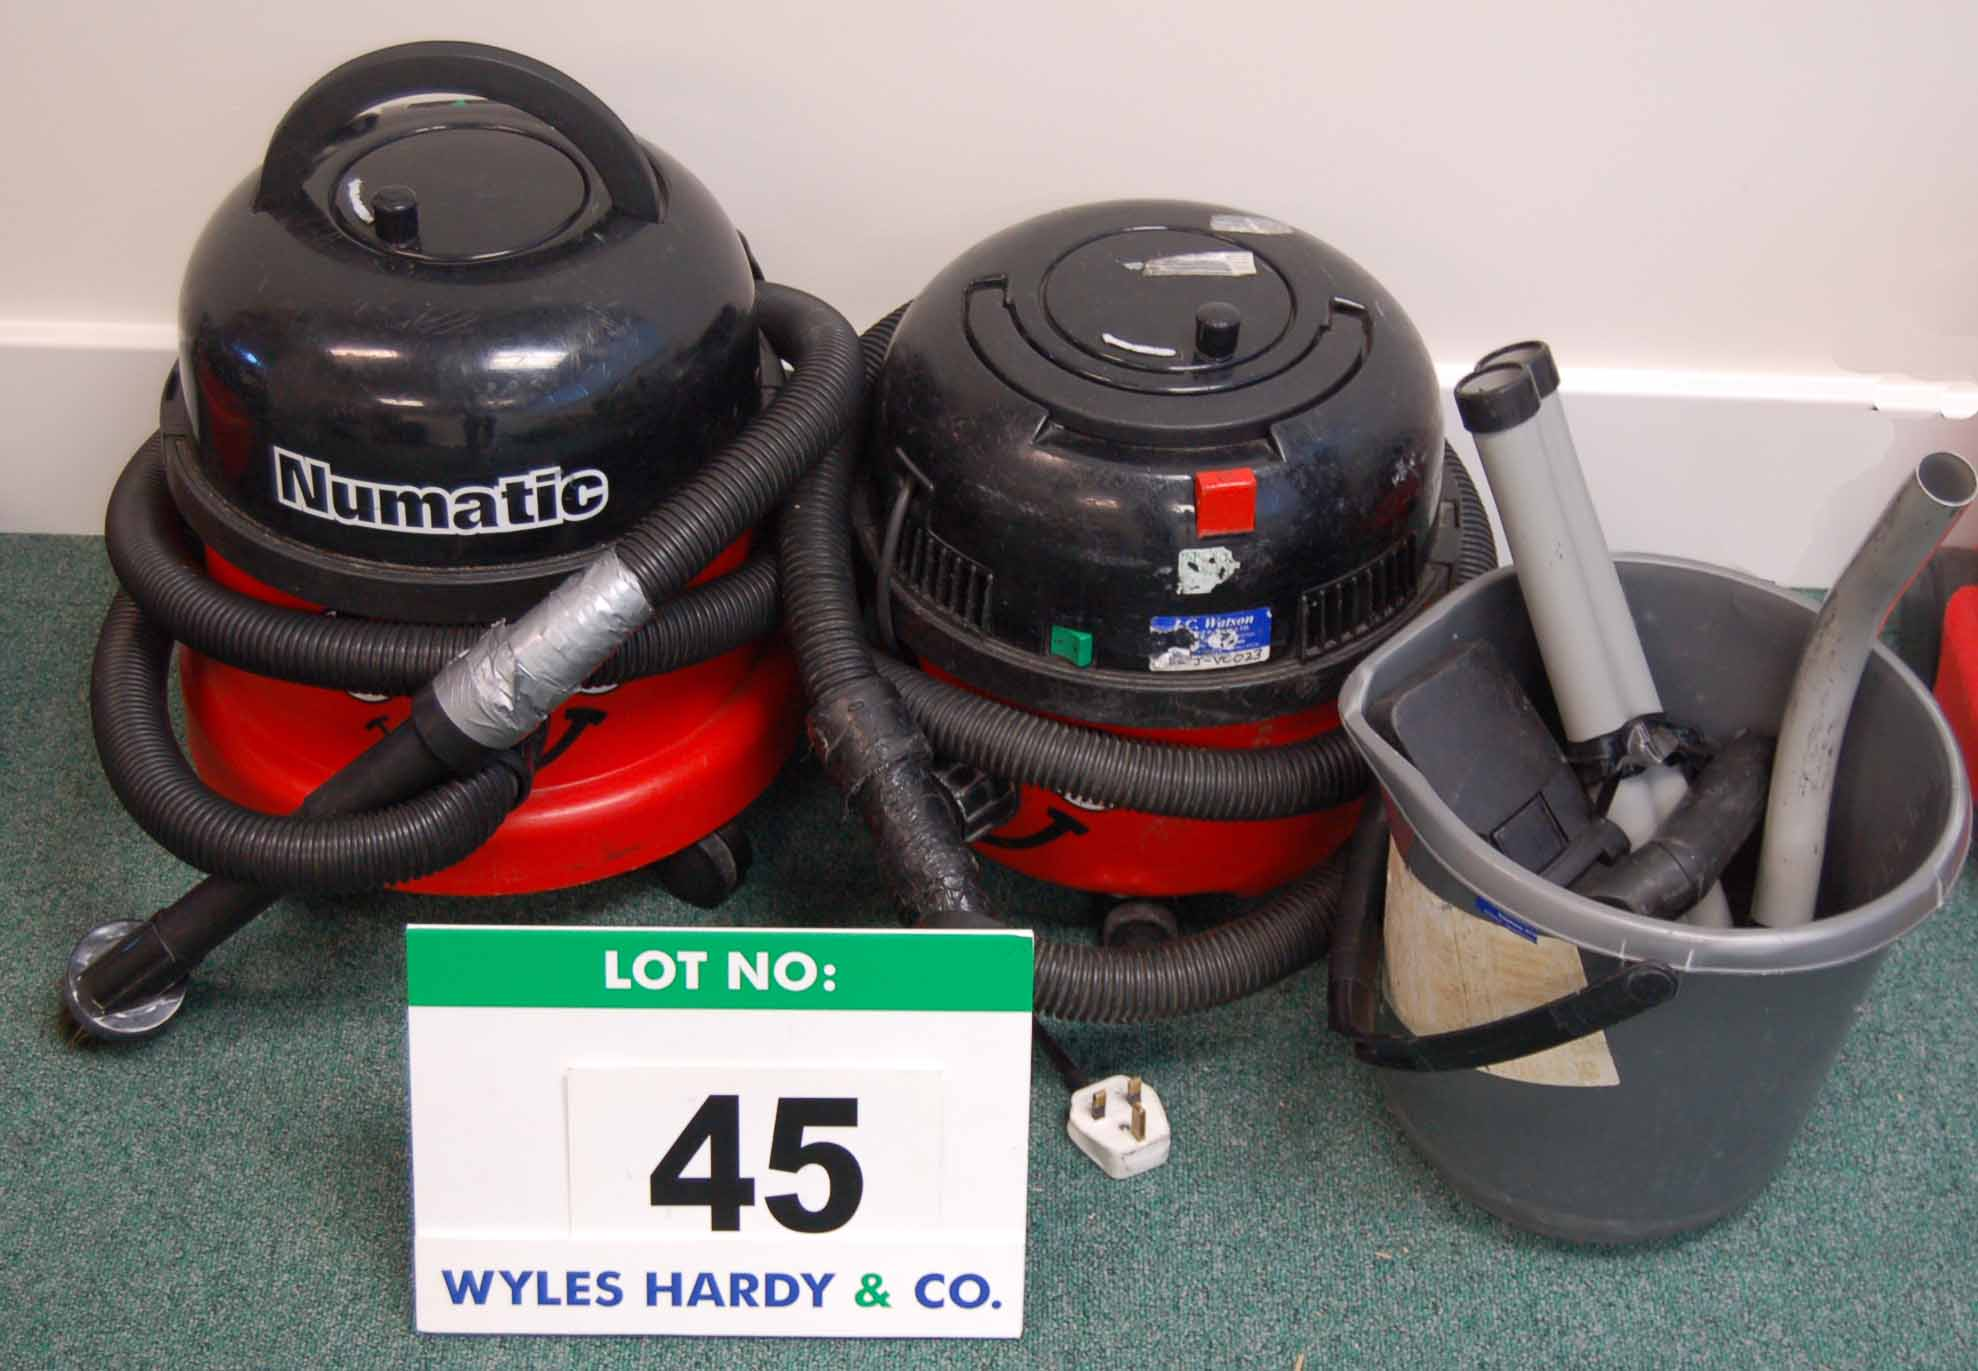 Lot 45 - Two NUMATIC Henry Vacuum Cleaners and Accessories (As Photographed)